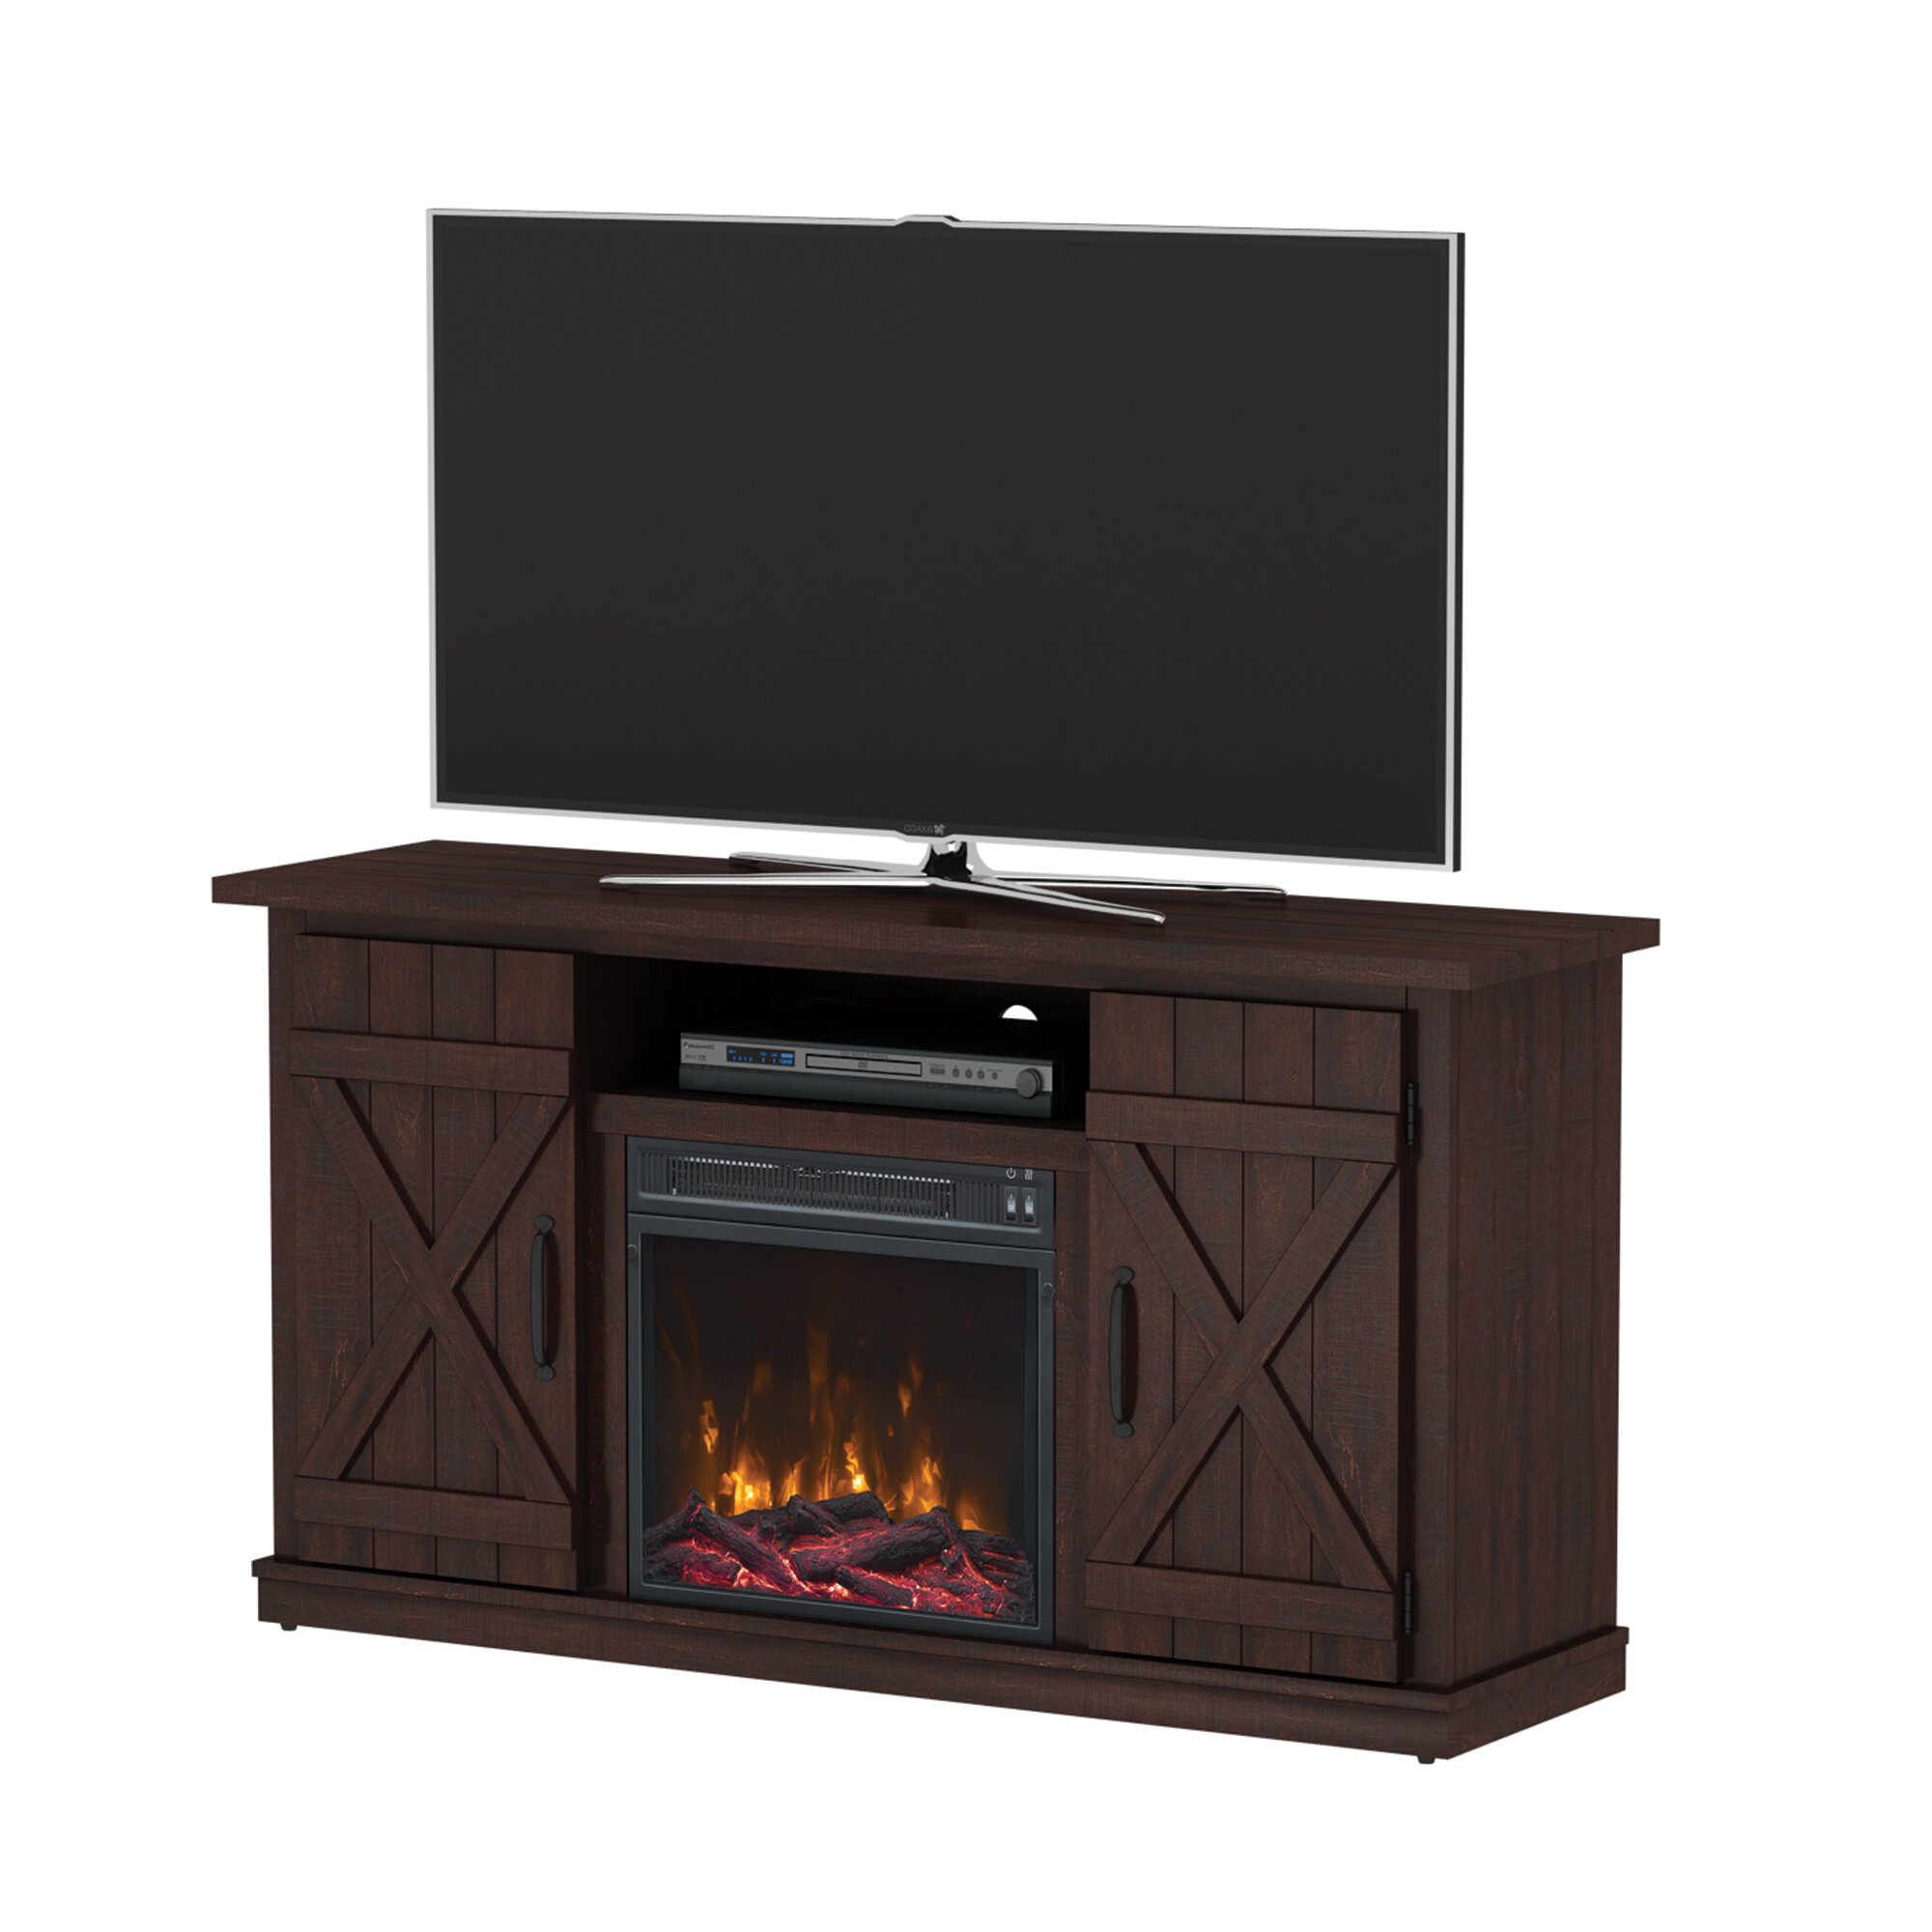 Laurel Foundry Modern Farmhouse Serein 48 Tv Stand With Fireplace